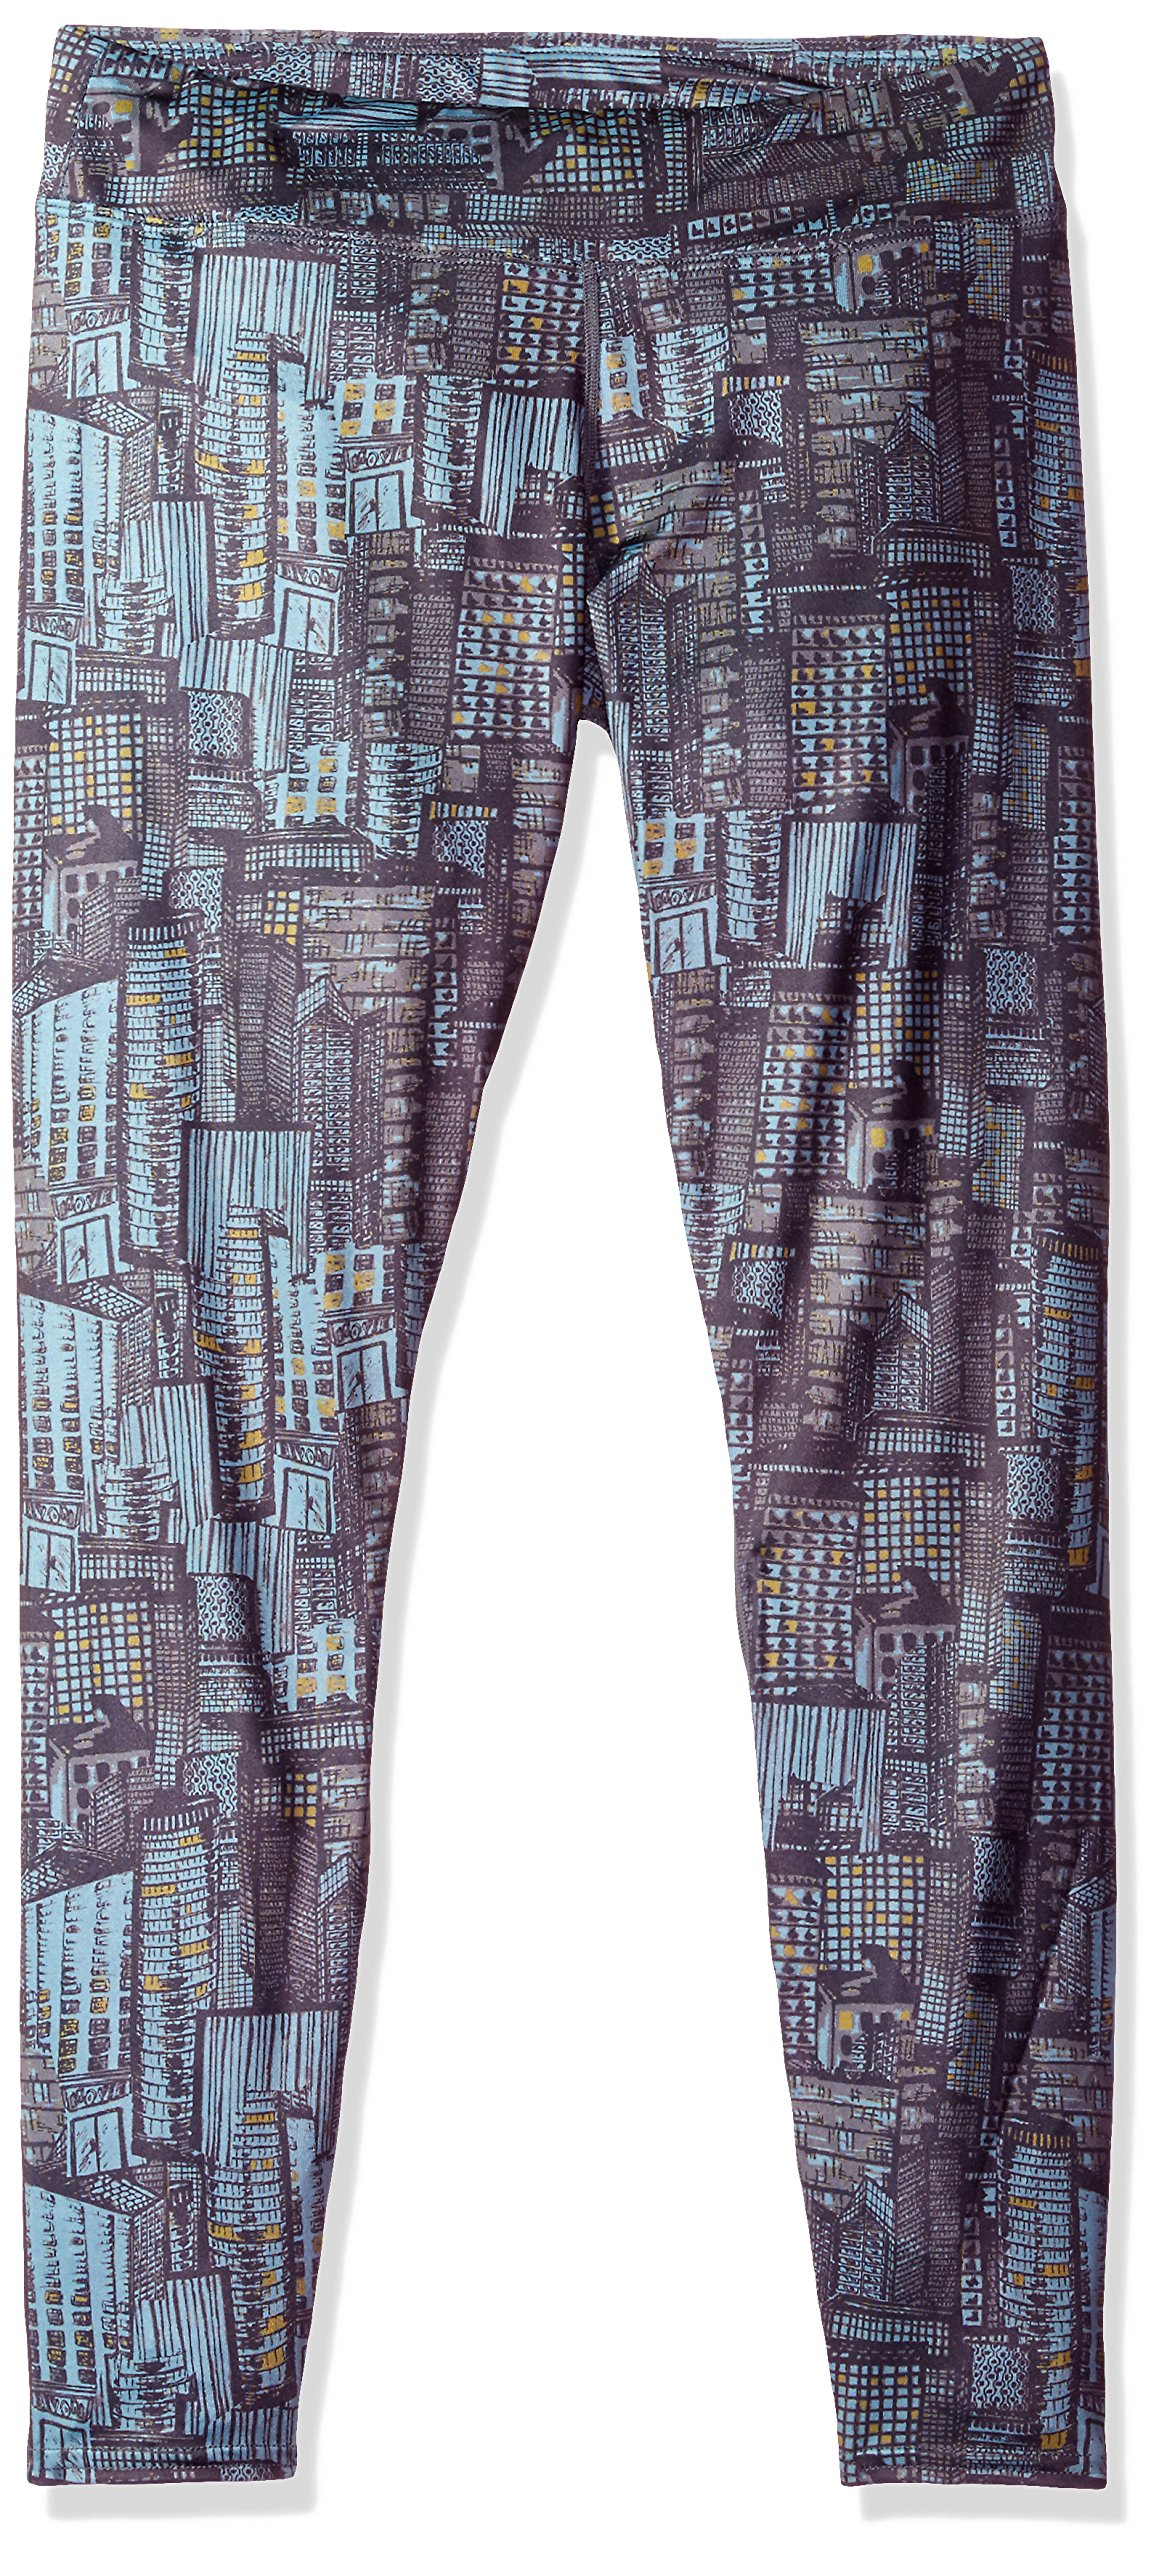 Hot Chillys Women's MTF4000 Fiesta Print Tights, Large, Structure